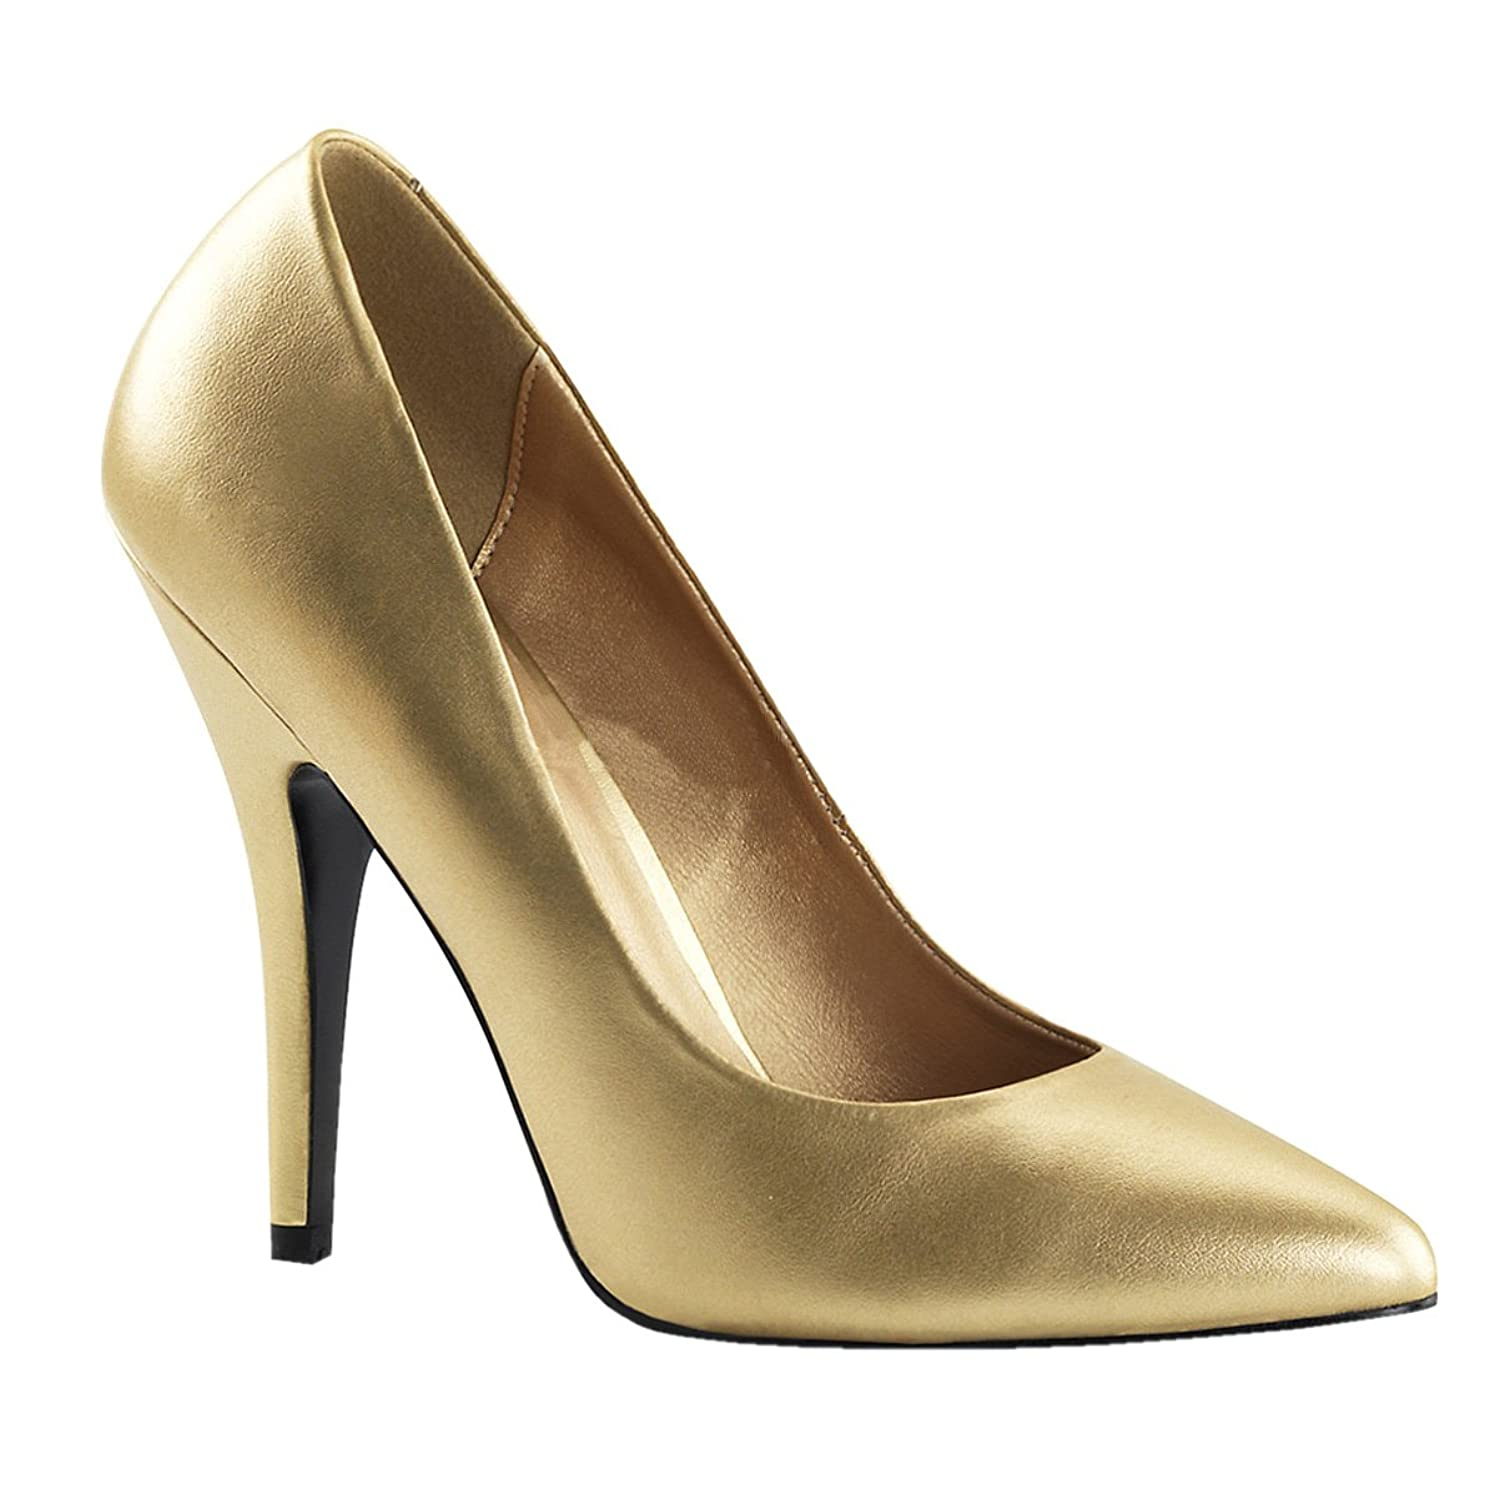 30addfbd5ae Trendy Champagne Color Shoes Plans - Totaltravel.US